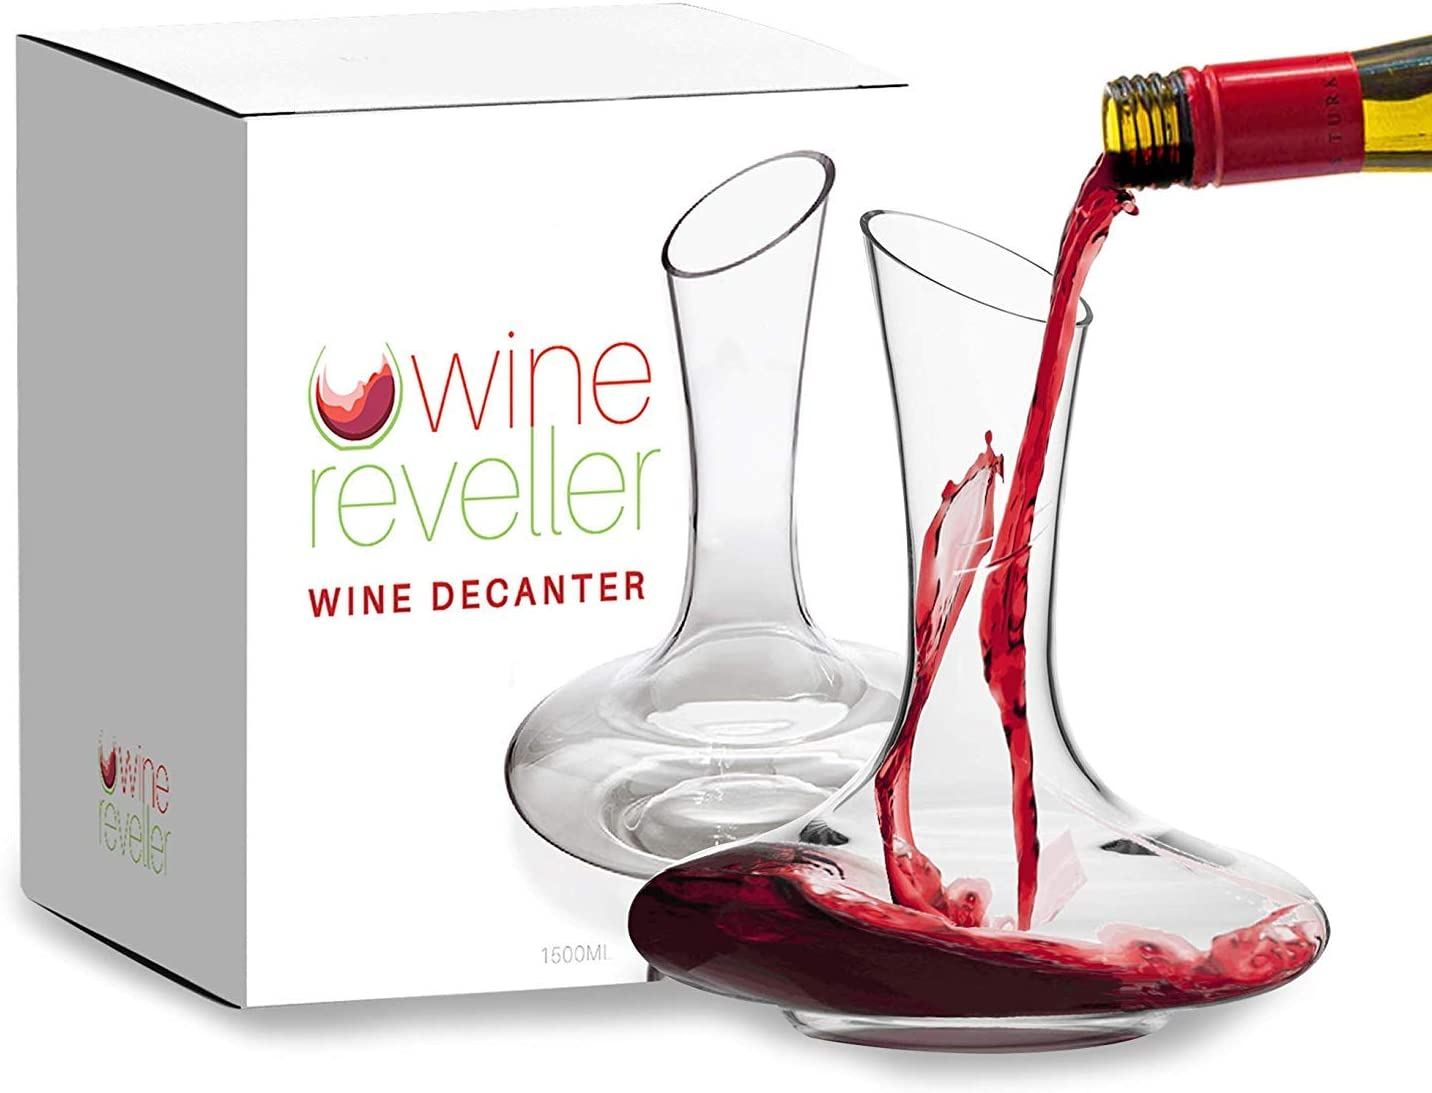 Amazon Com Wine Reveller Wine Decanter 100 Hand Blown Lead Free Sturdy Crystal Glass Red Wine Carafe Easy Pour Slanted Spout Gift For The Wine Lovers In Your Life Home Kitchen